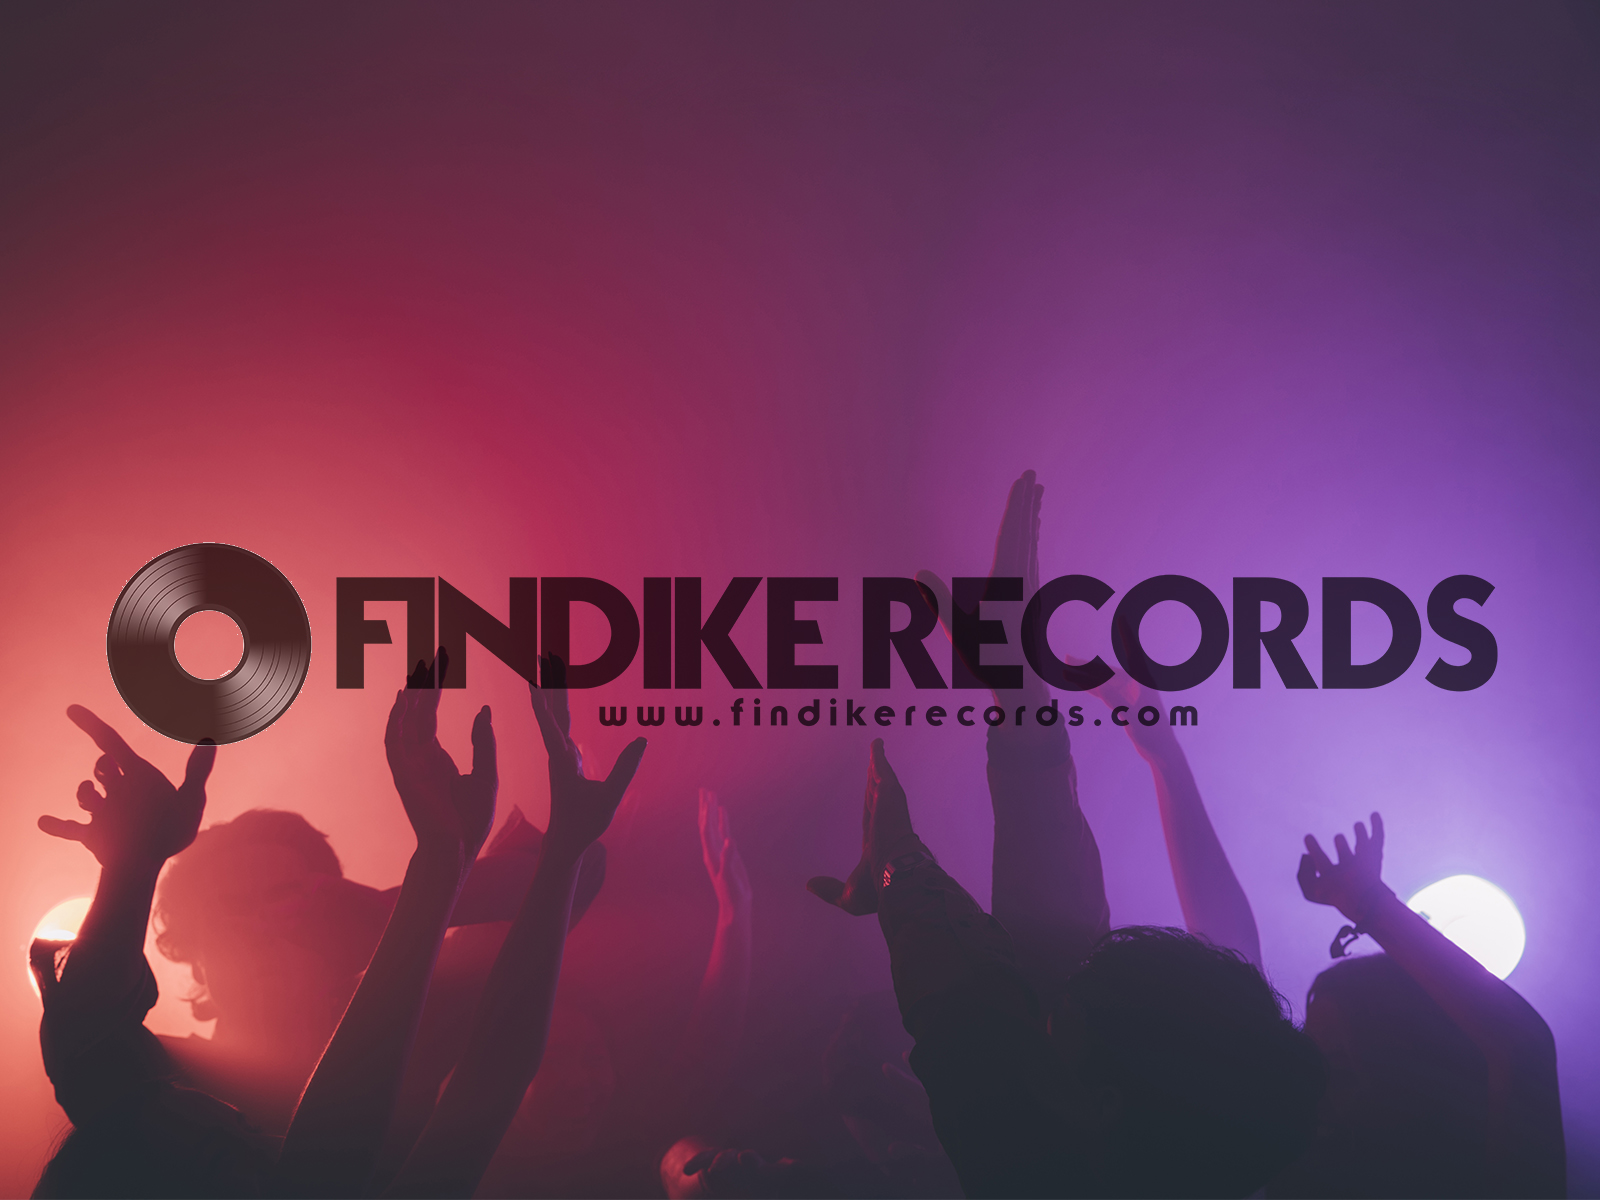 findike records